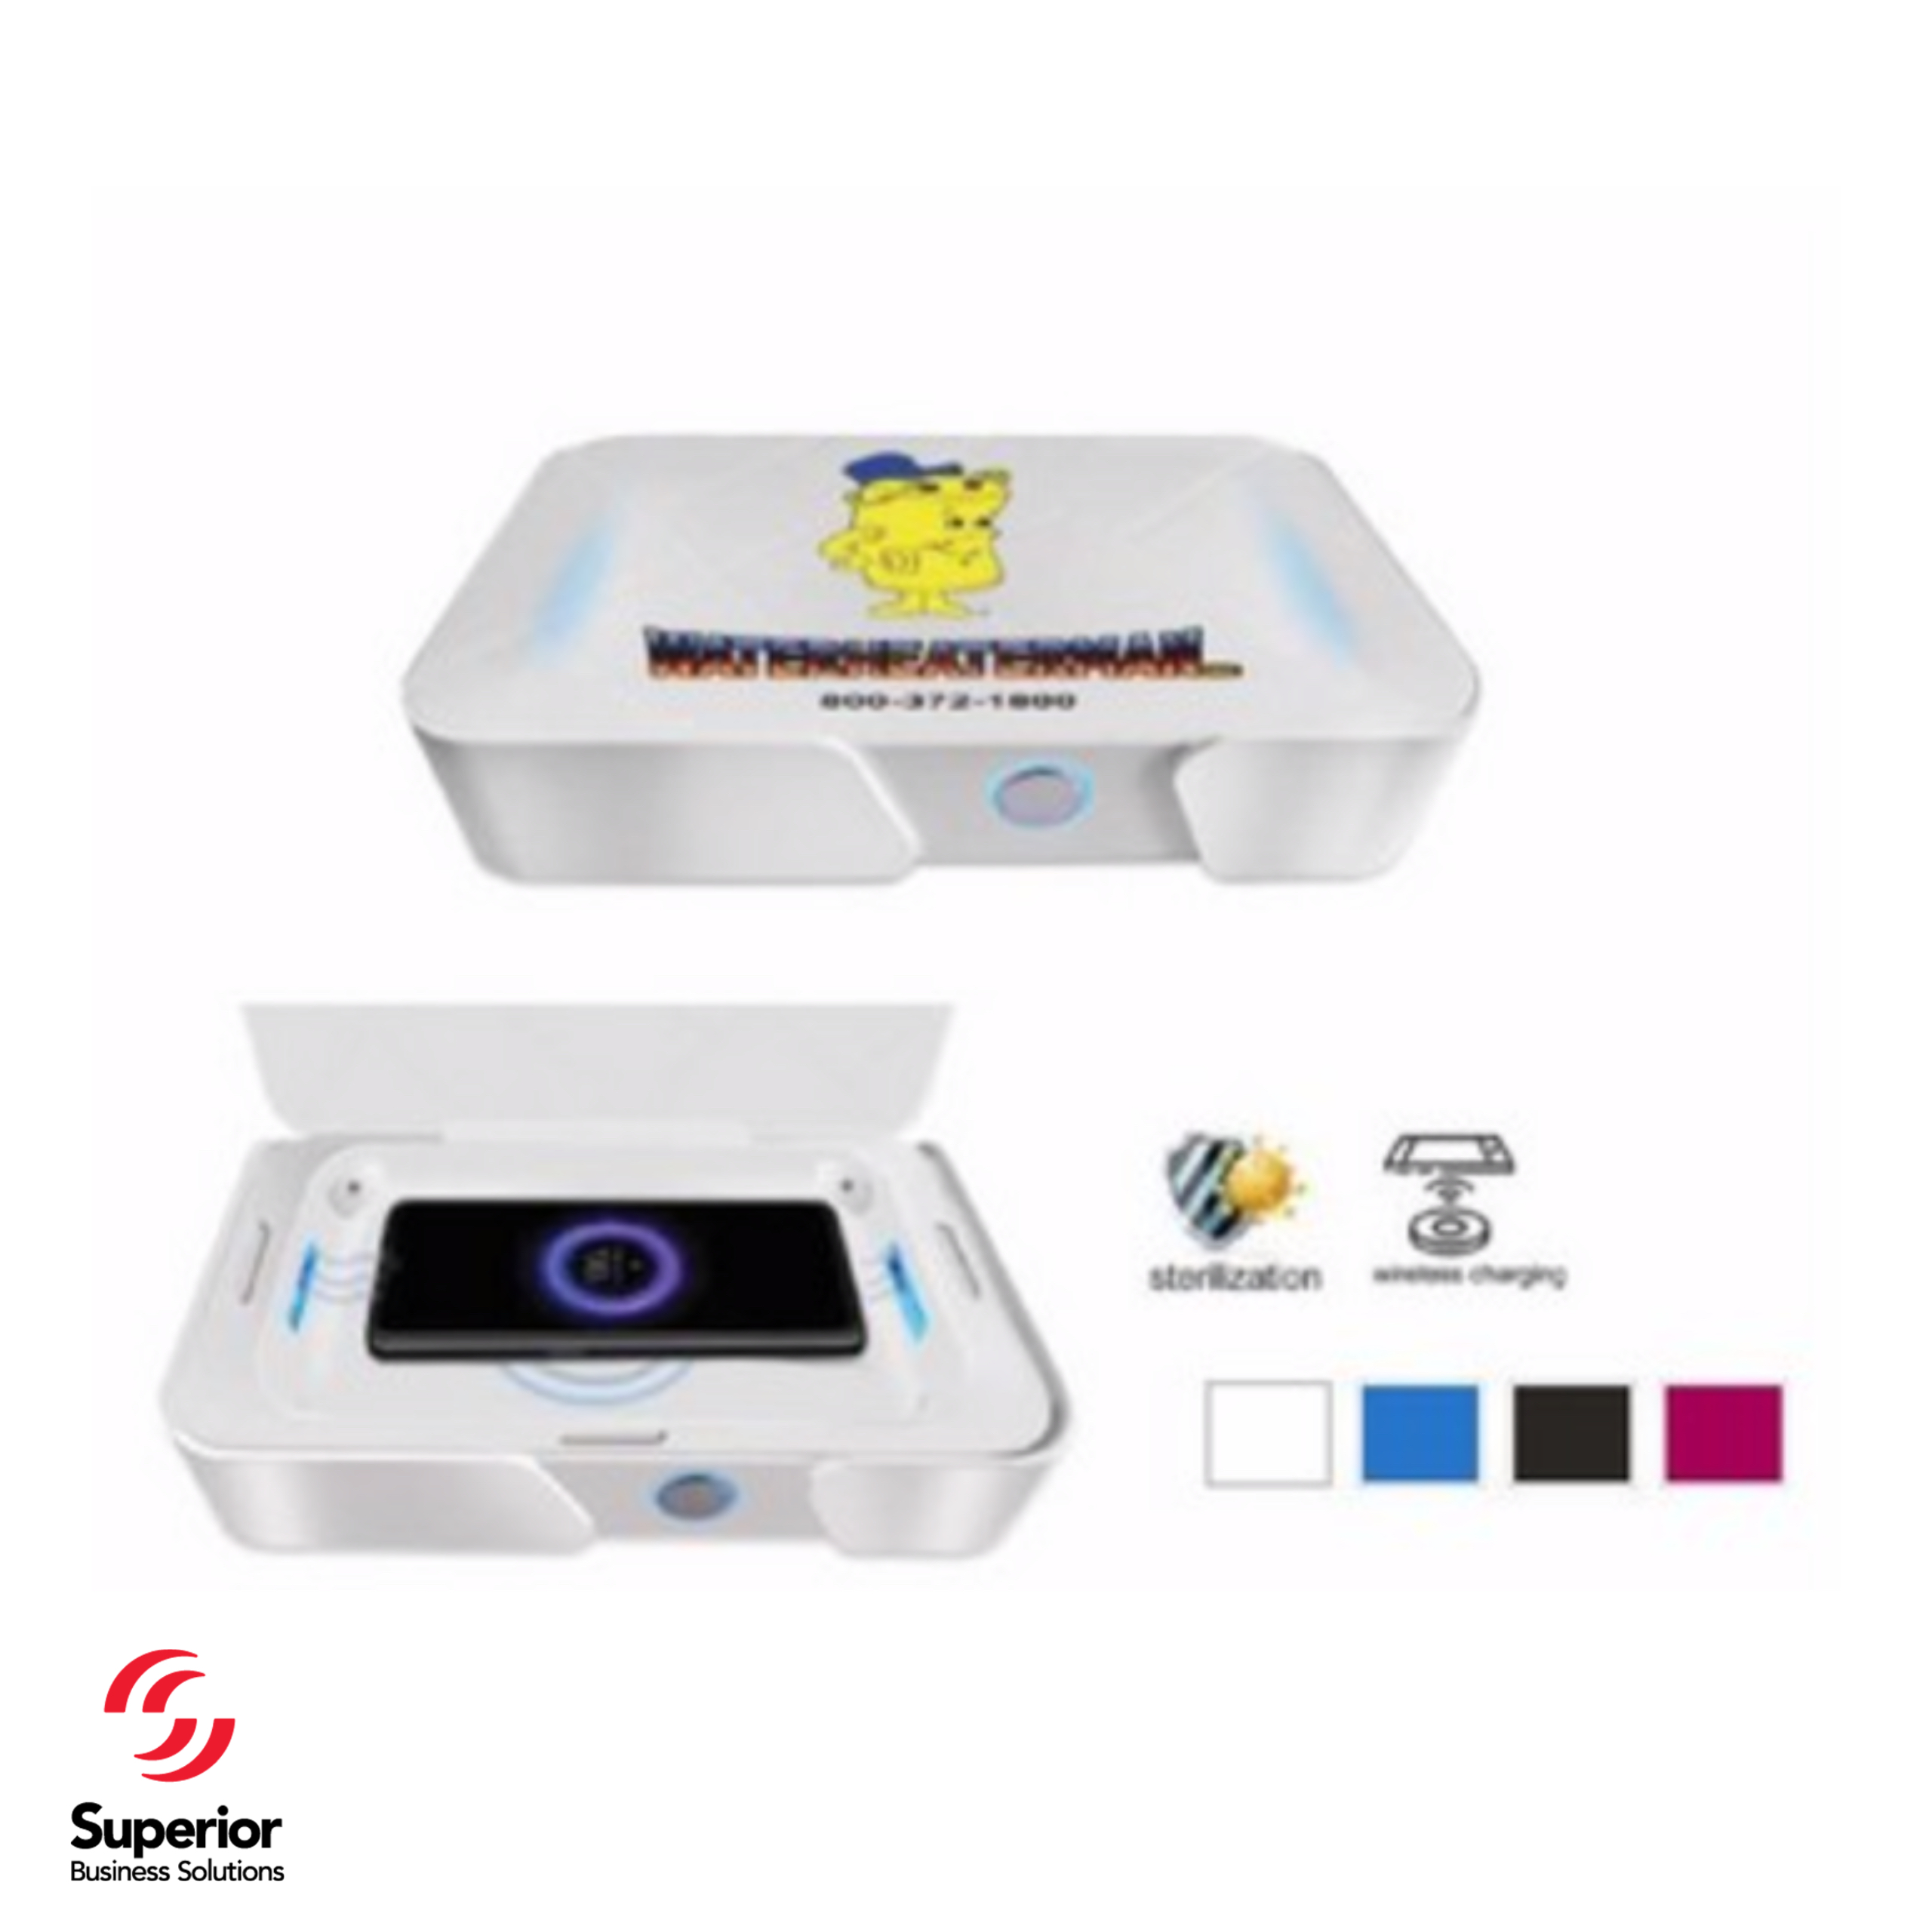 UV Sterilizer and Wireless Phone Charger Comes in Many Colors